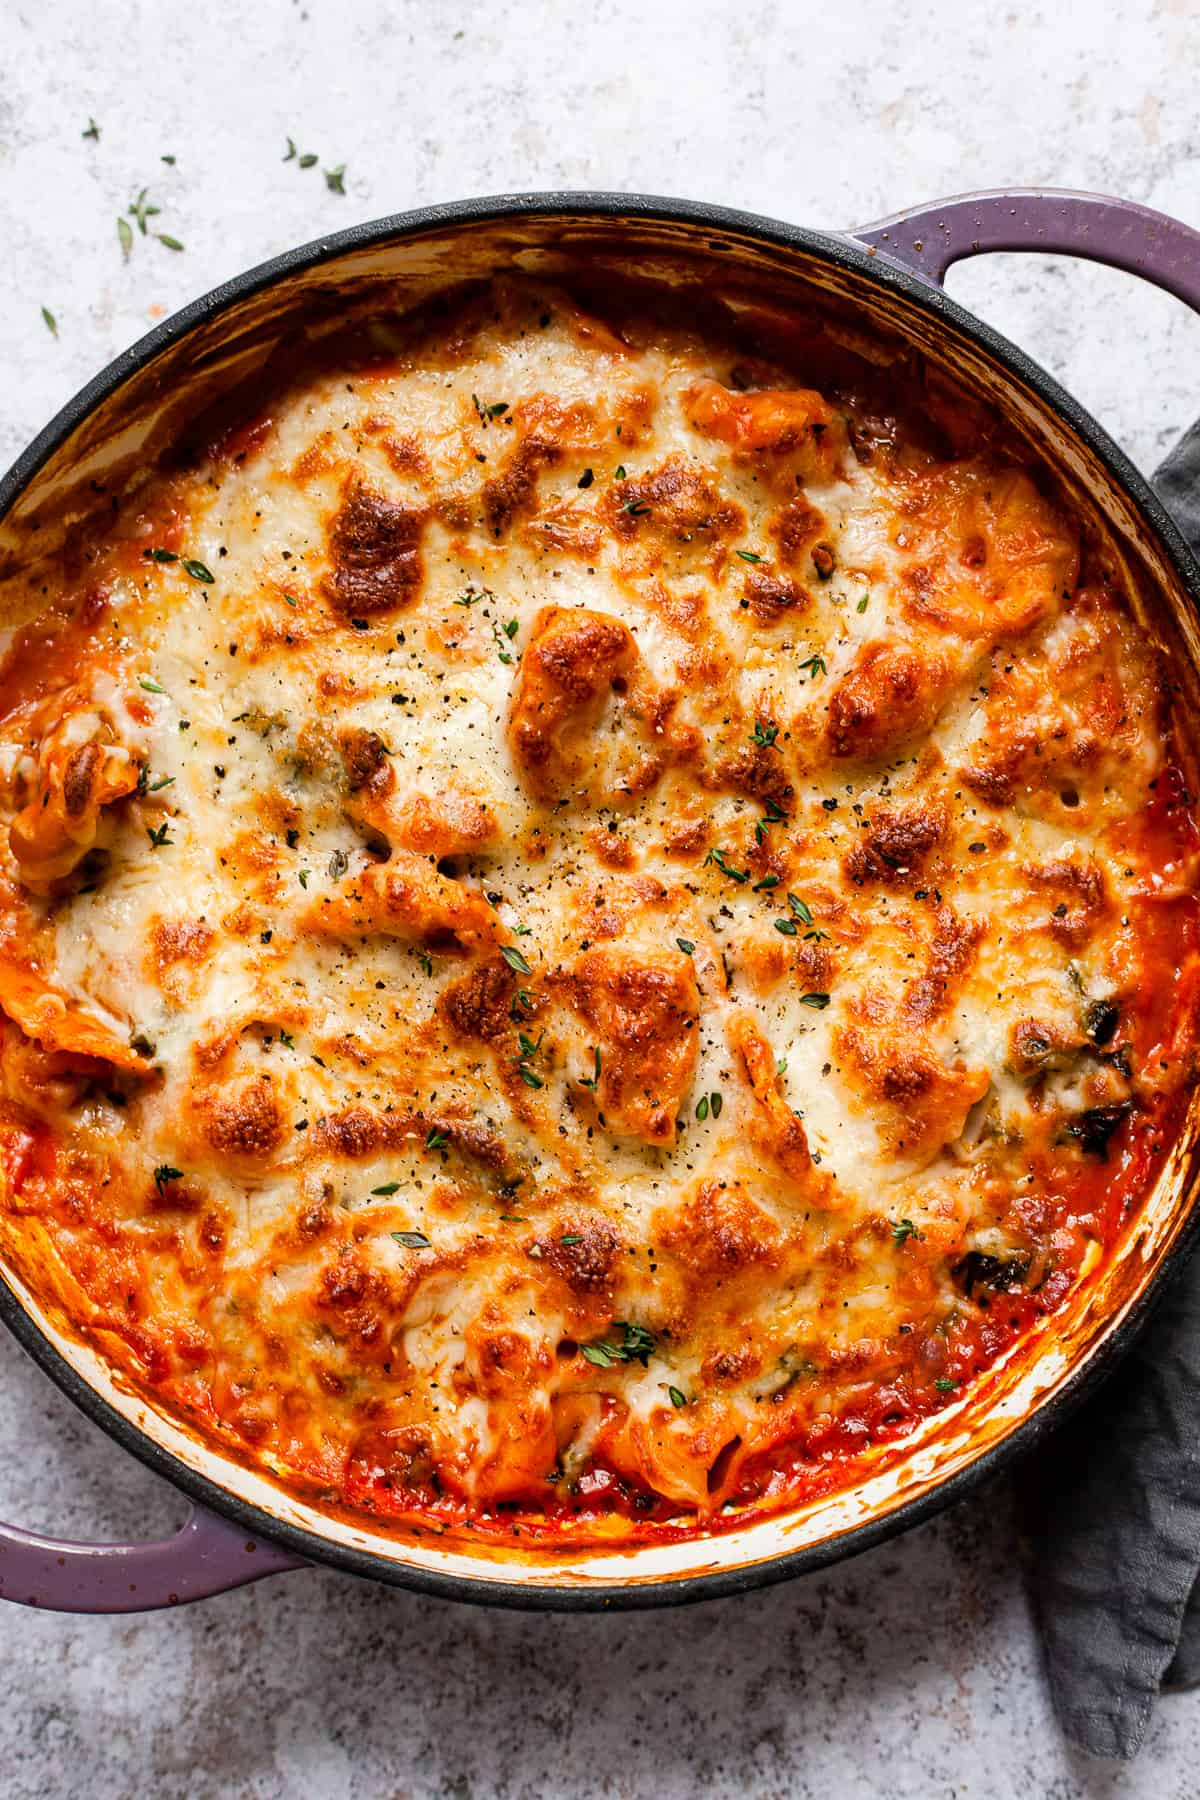 Baked tortellini with golden bubbling cheese. Aldi ingredients.